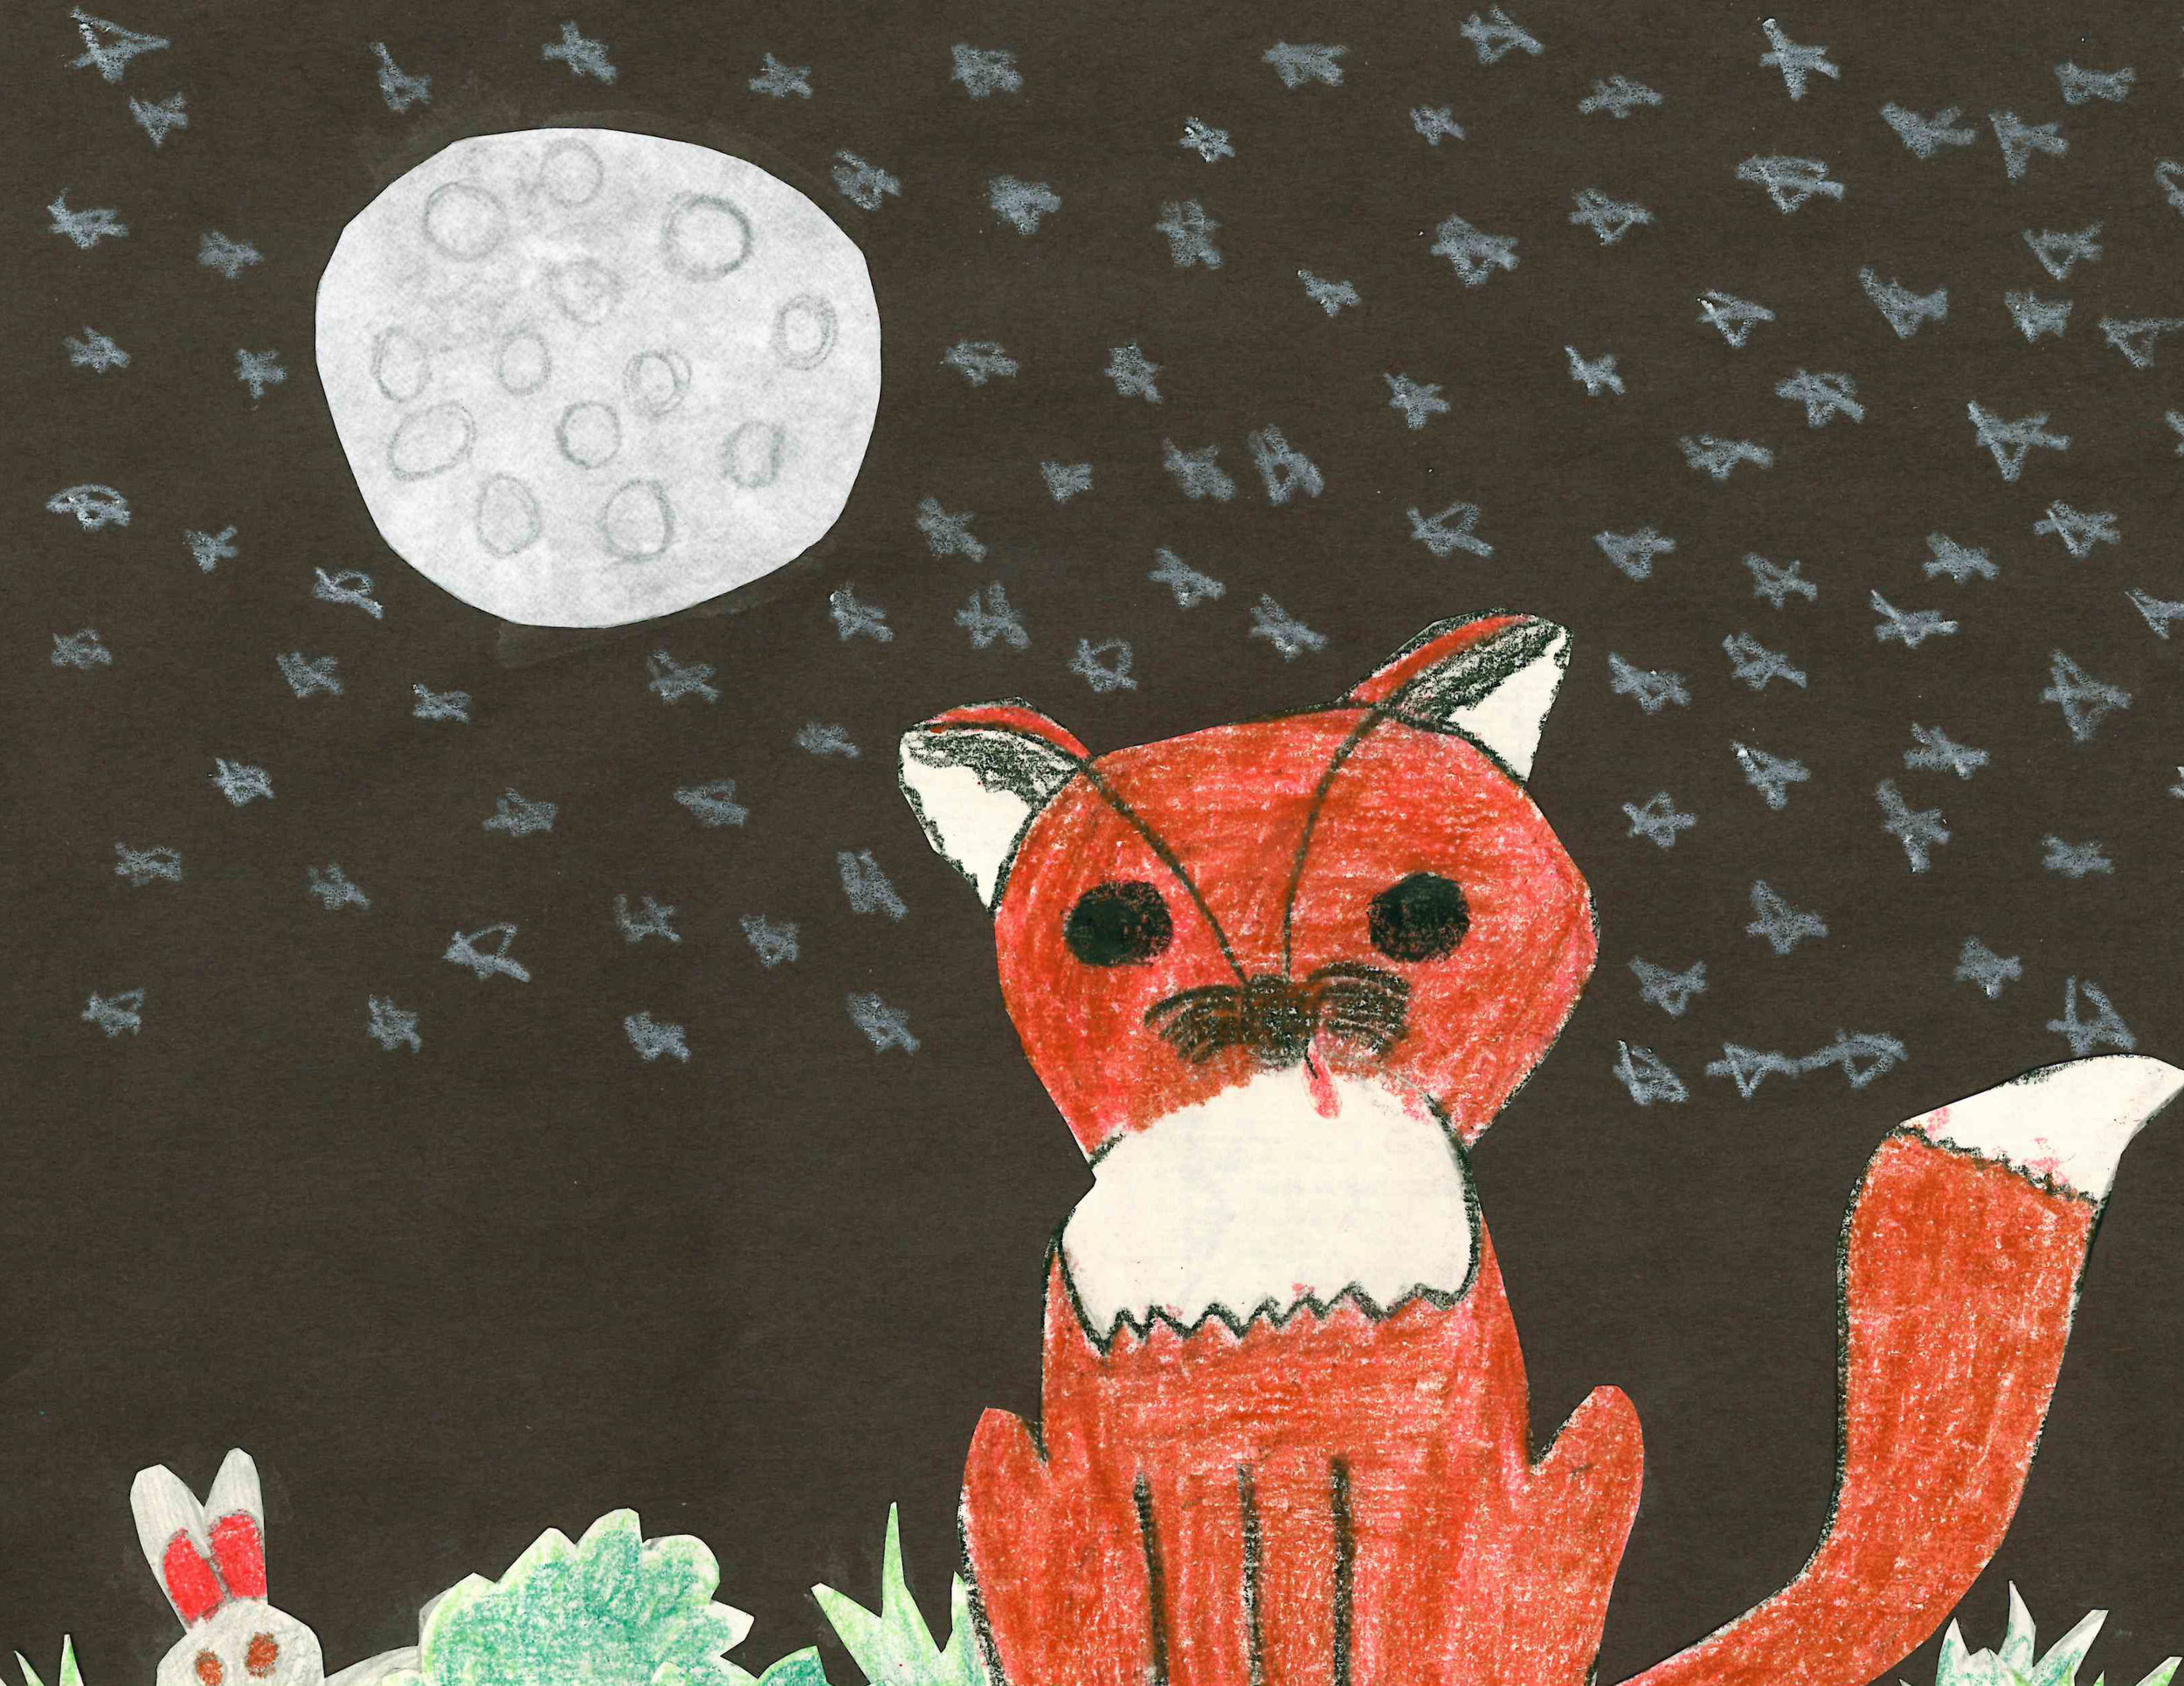 Starry Night by Stella Johnson - 3rd Place - Grades K-2